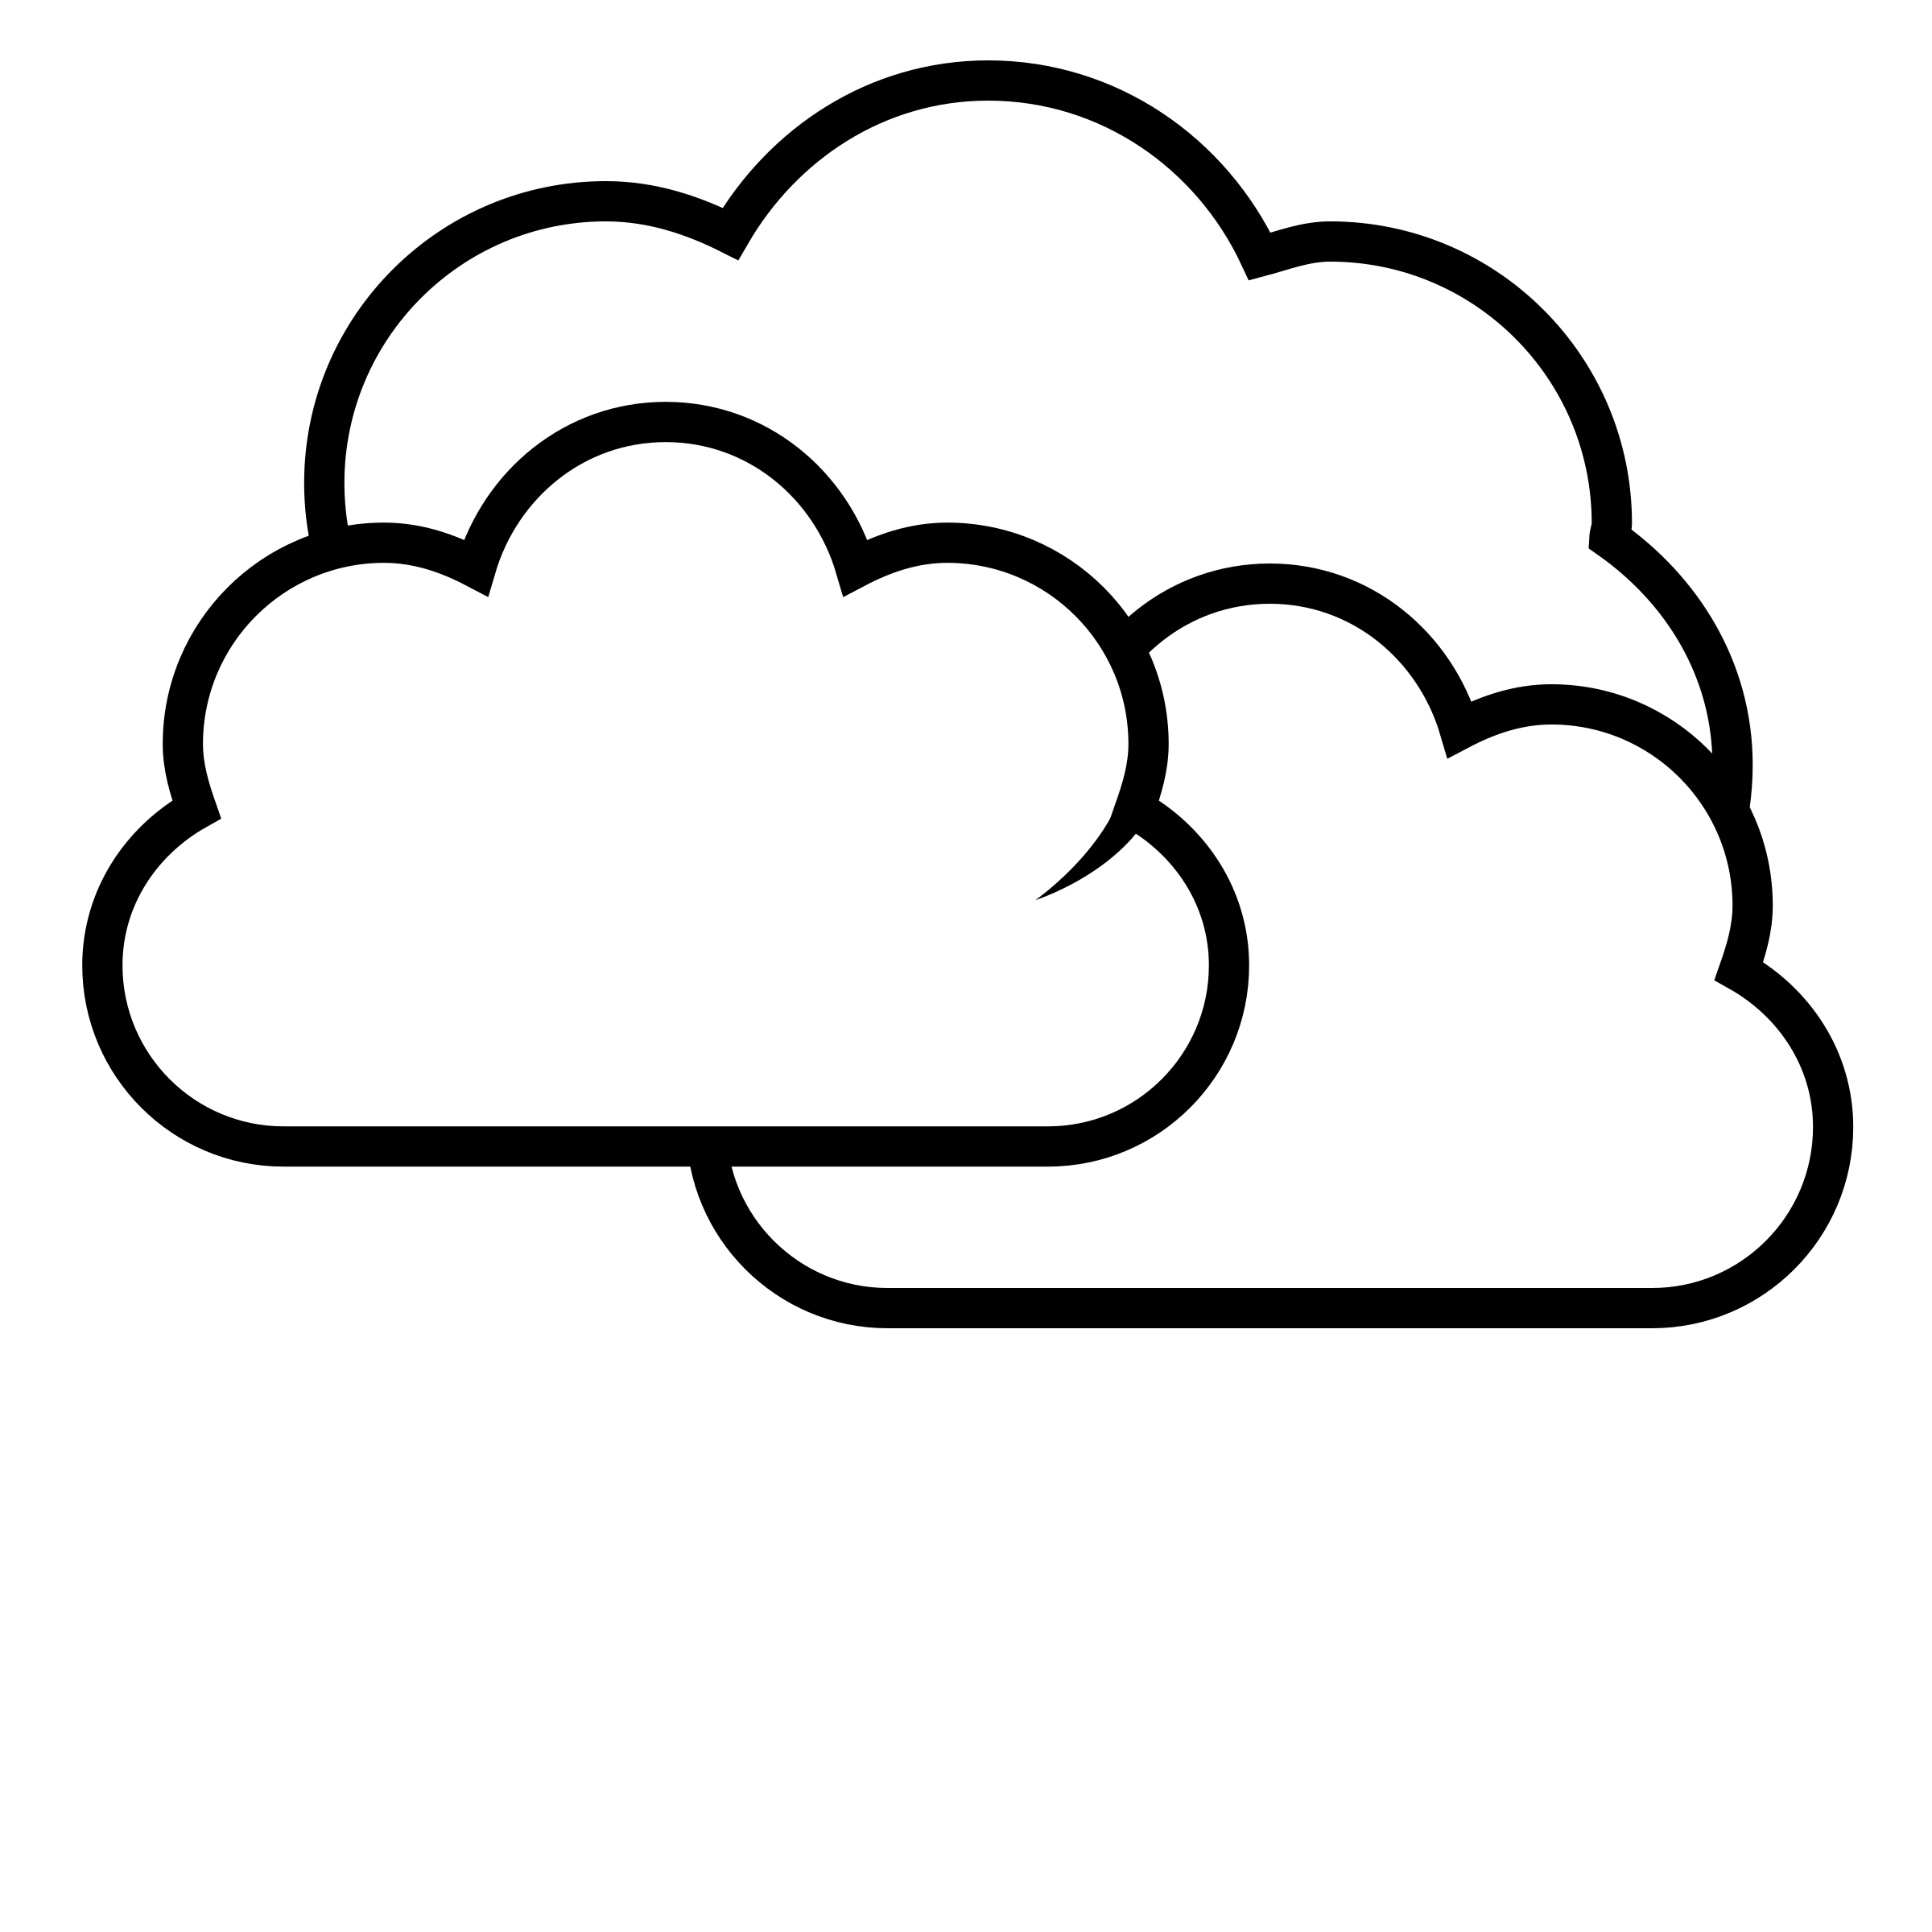 Partly clipart cloudy clipart. Free download on cognigen